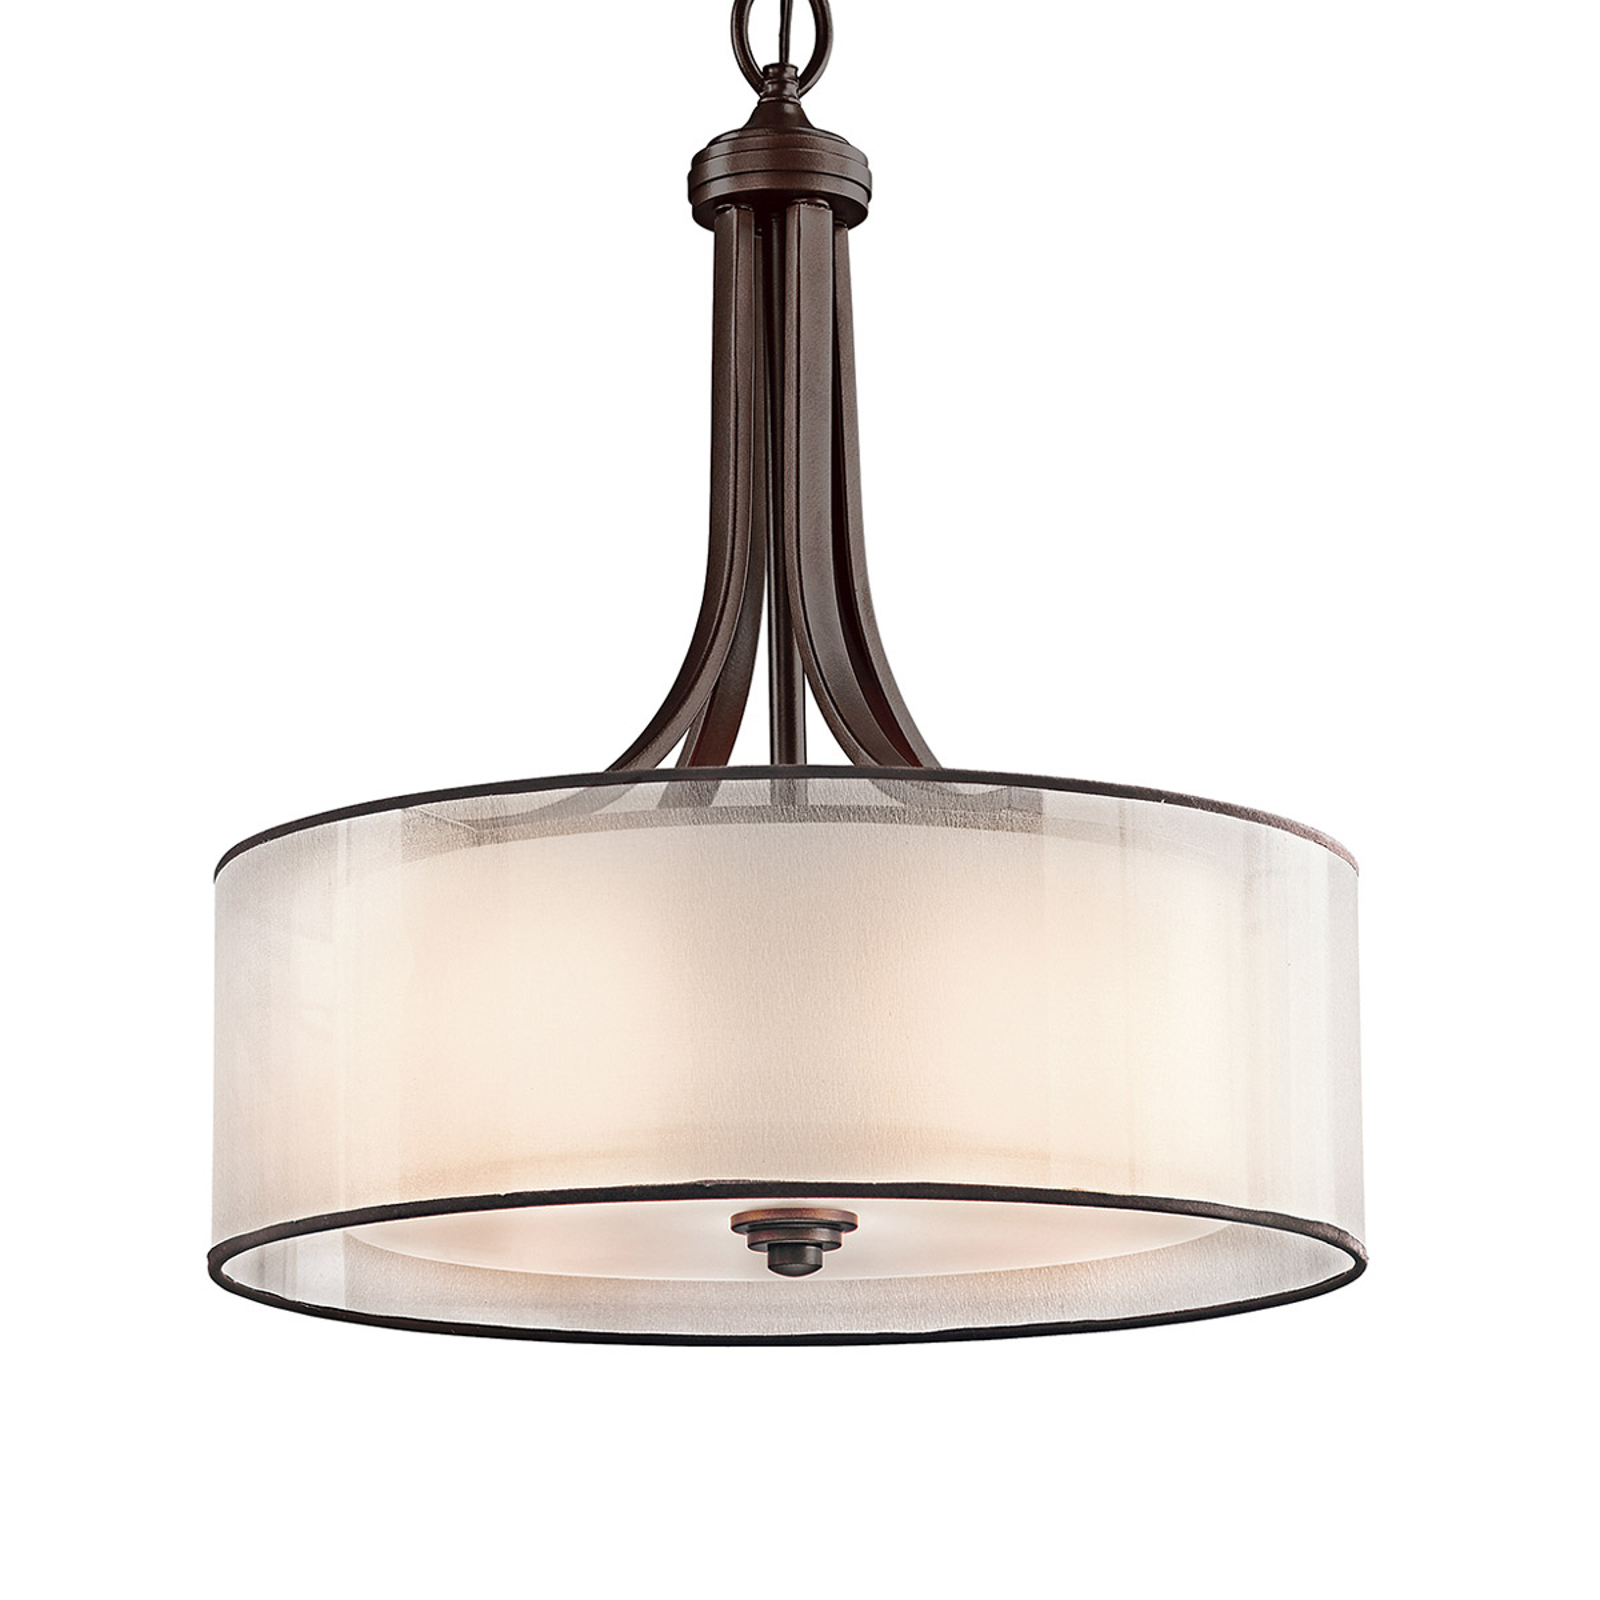 Exquisite hanging light Lacey_3048286_1